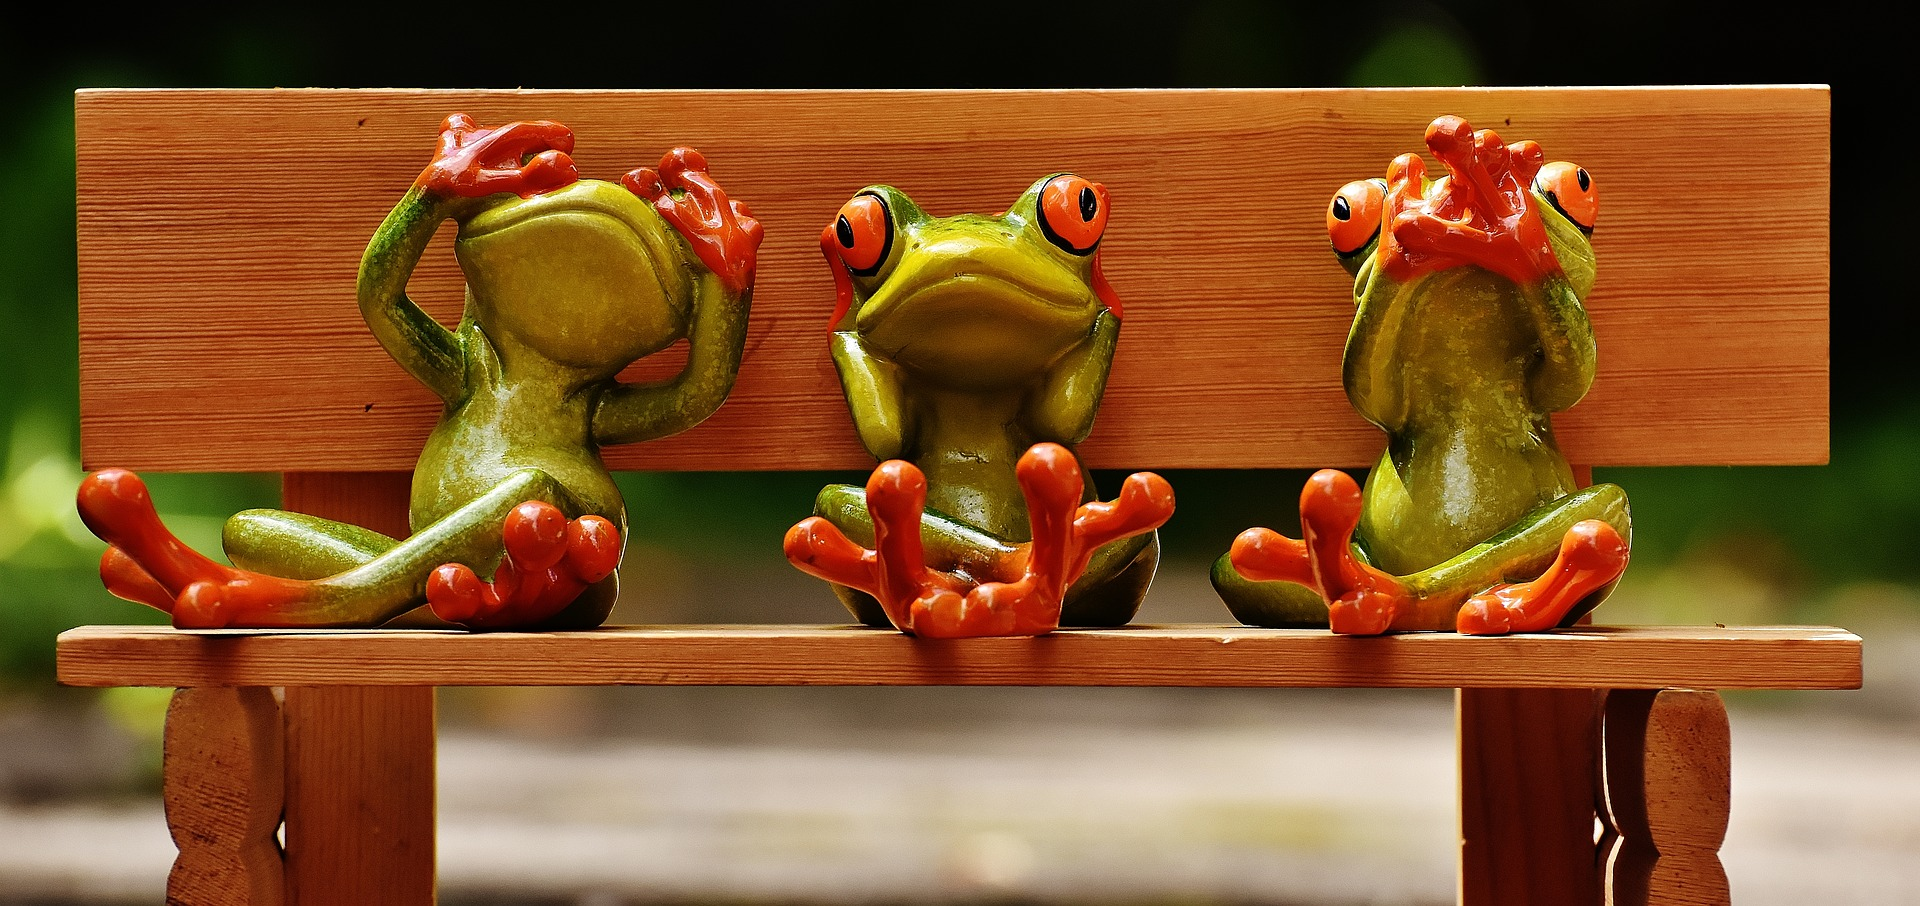 frogs-1610562_1920